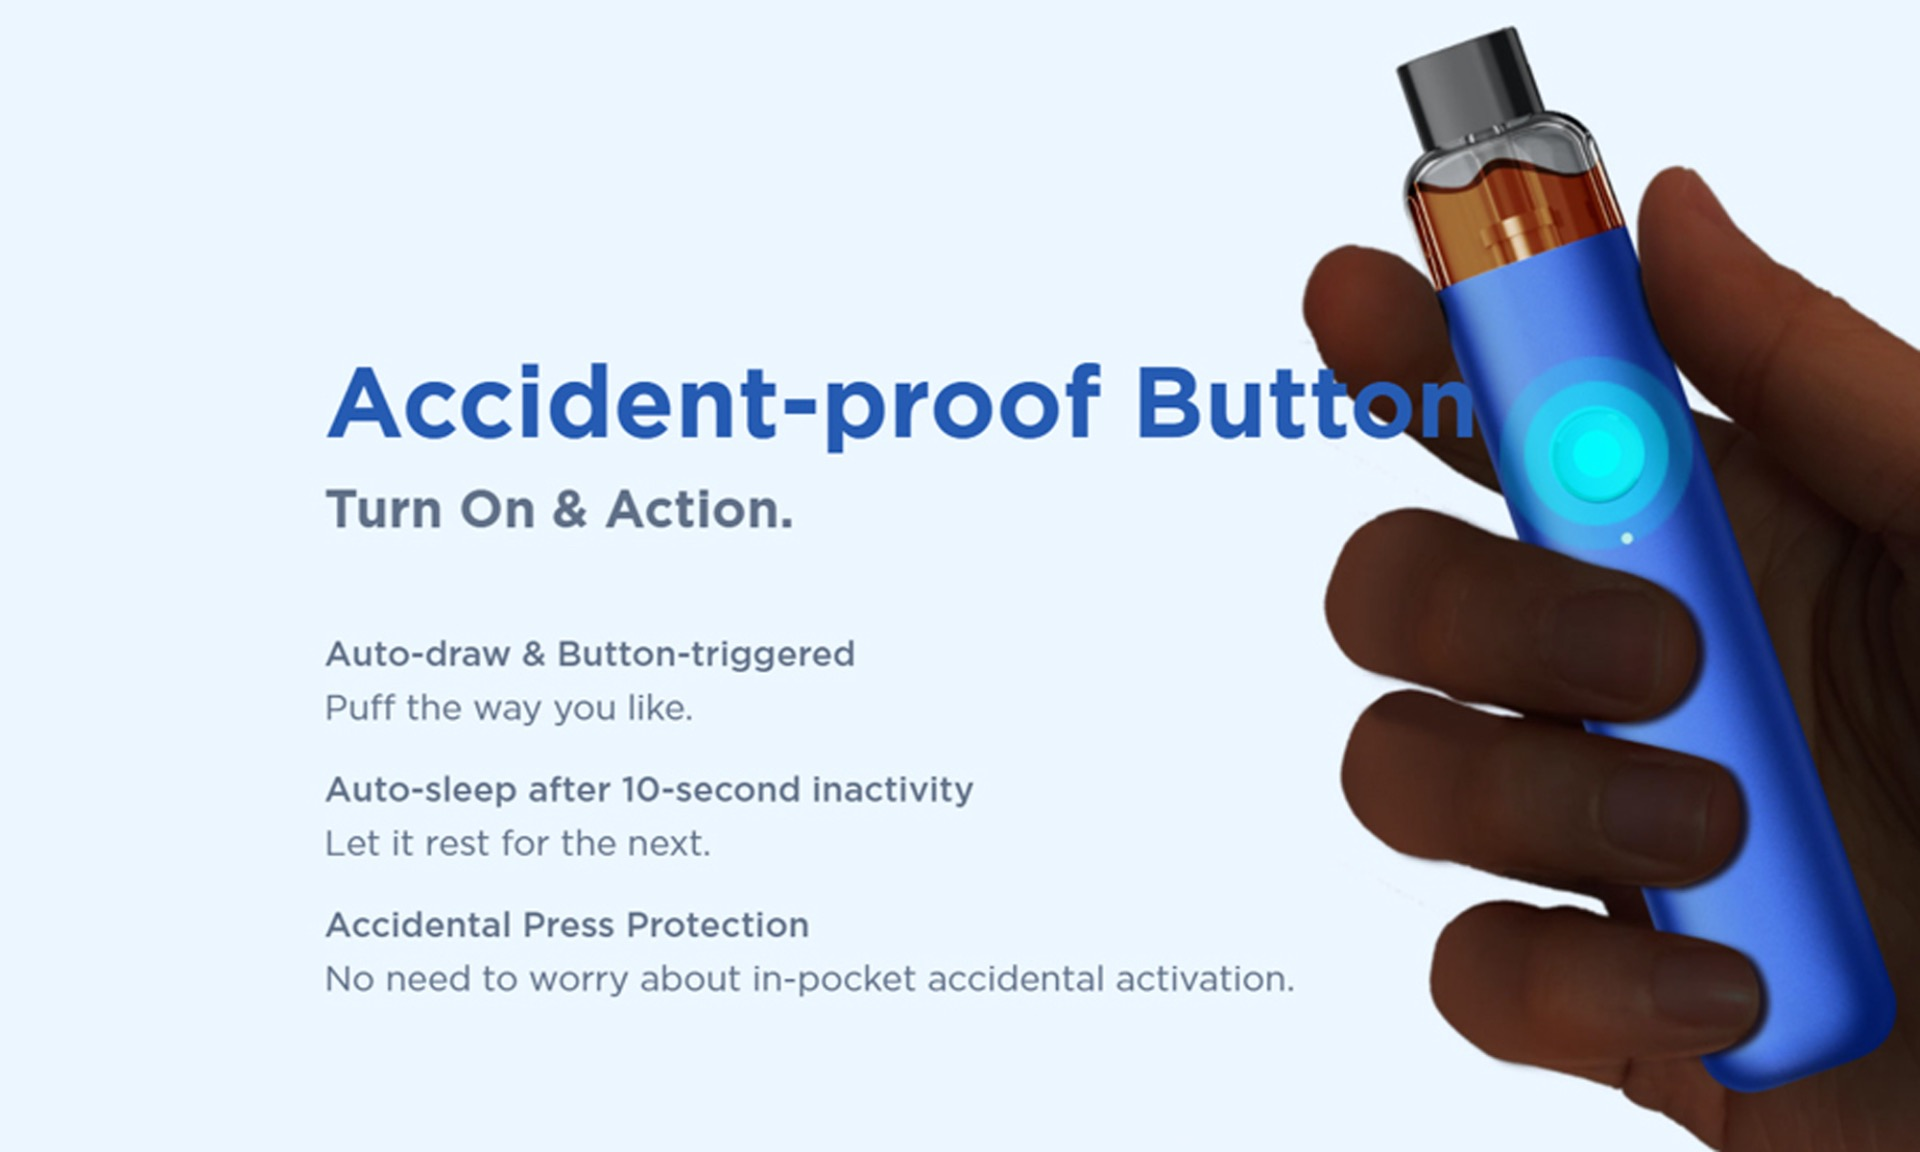 wenax accident proof button